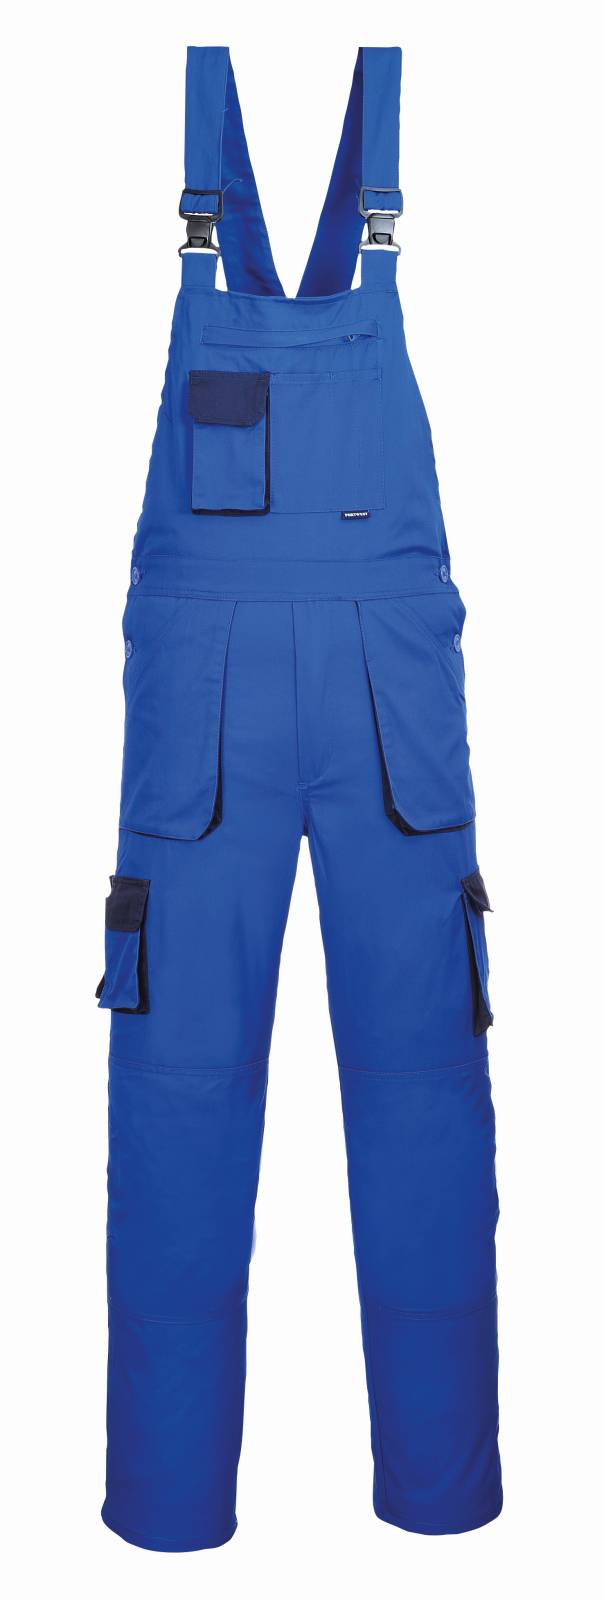 Portwest Amerikaanse overalls TX12 koningsblauw(RB)